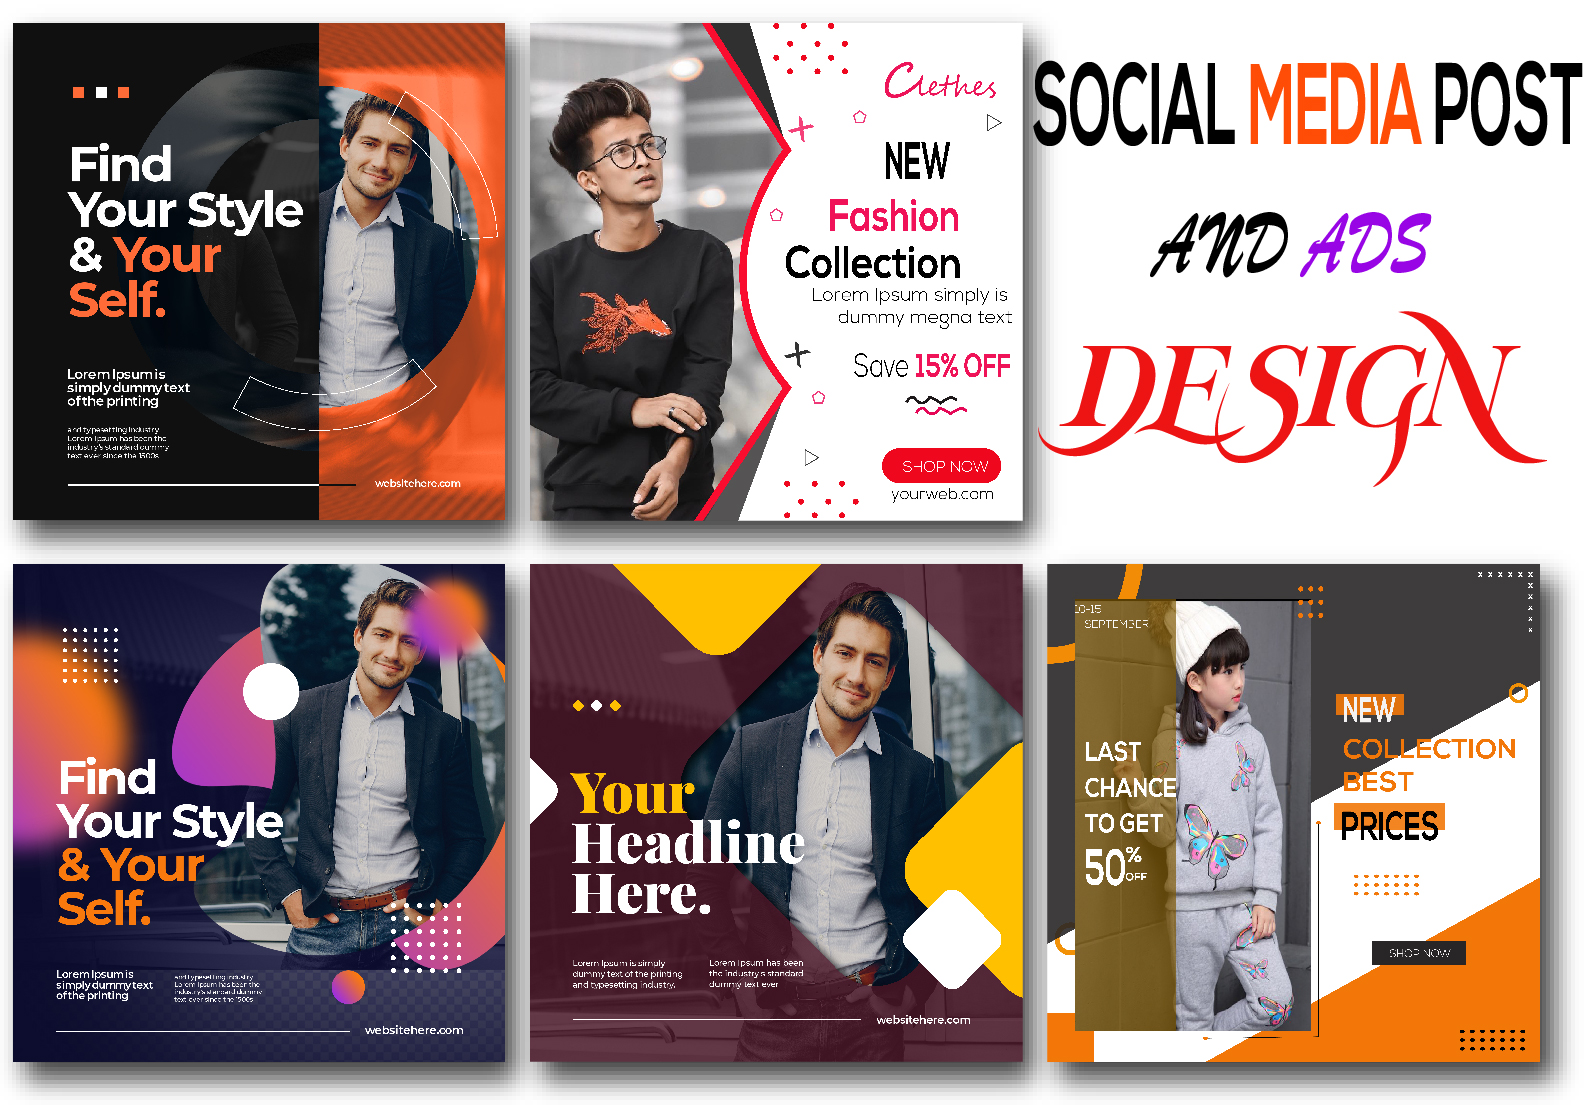 I will create attractive social media post design and ads